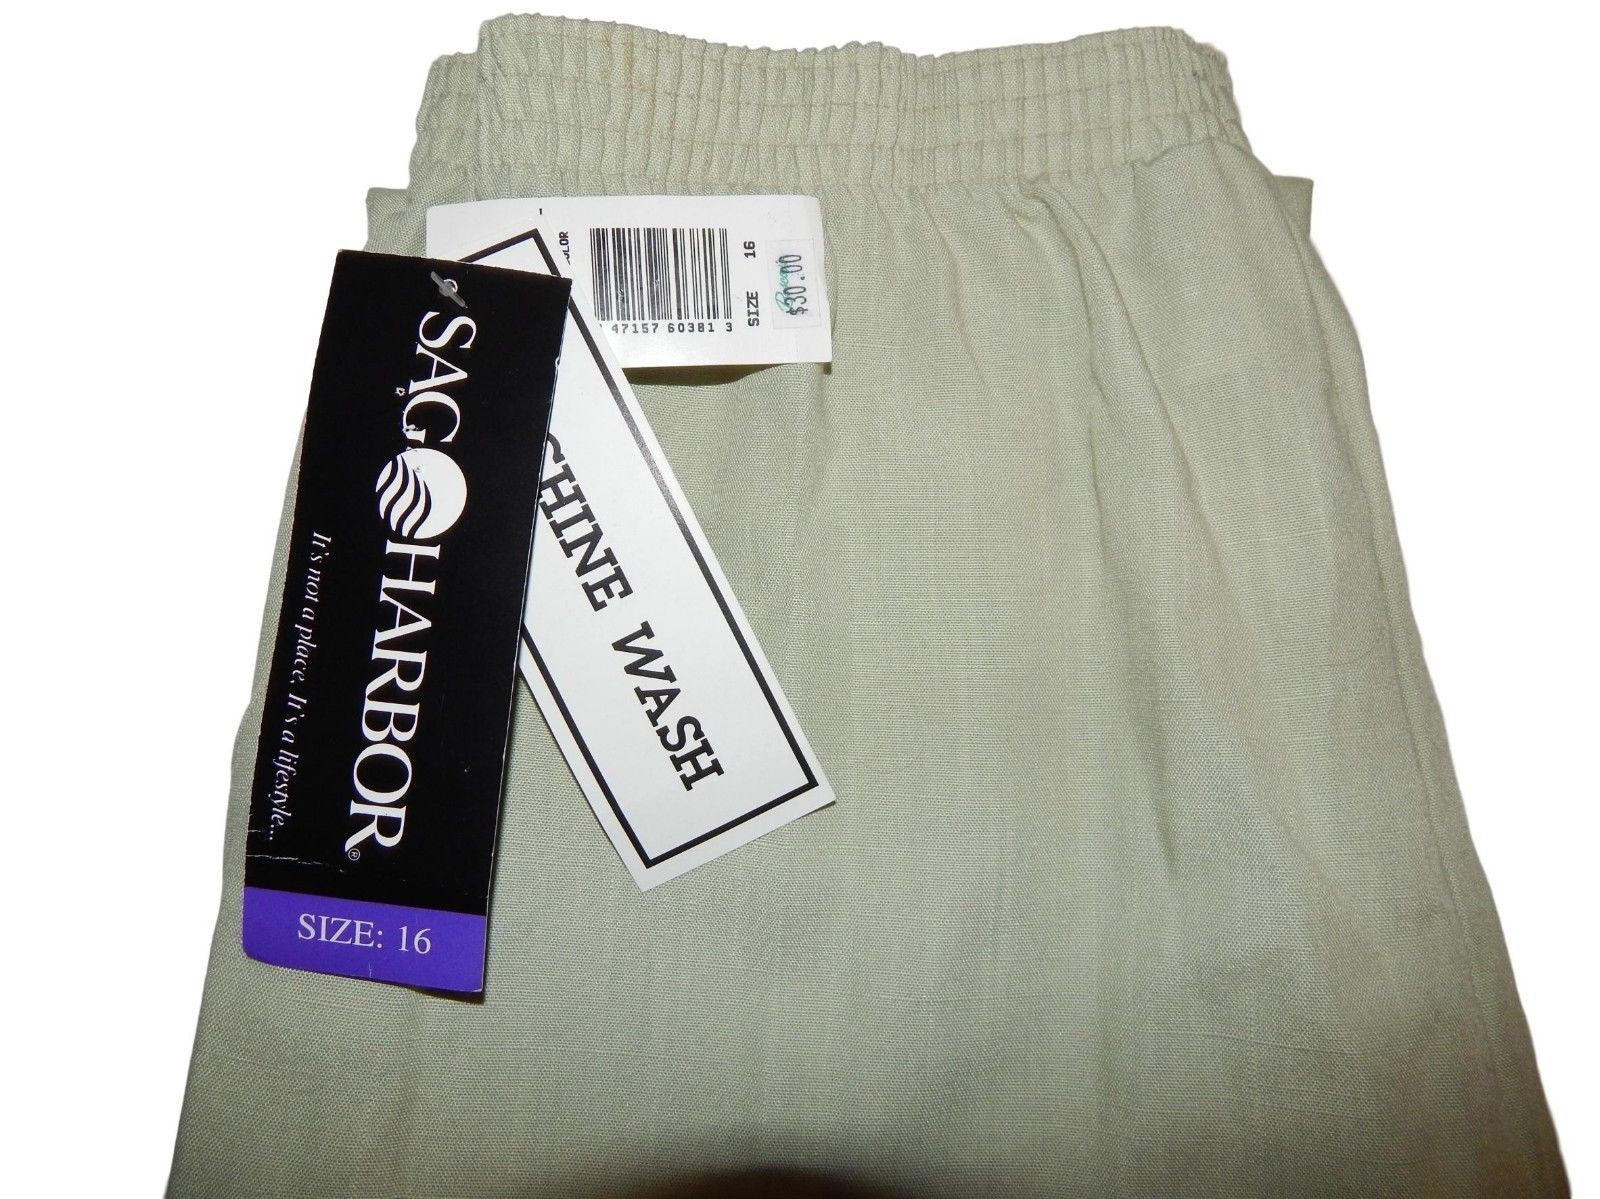 Sag Harbor Womens Stretch Pants Size 16 New 32 - 40 x 30 $30 Beige